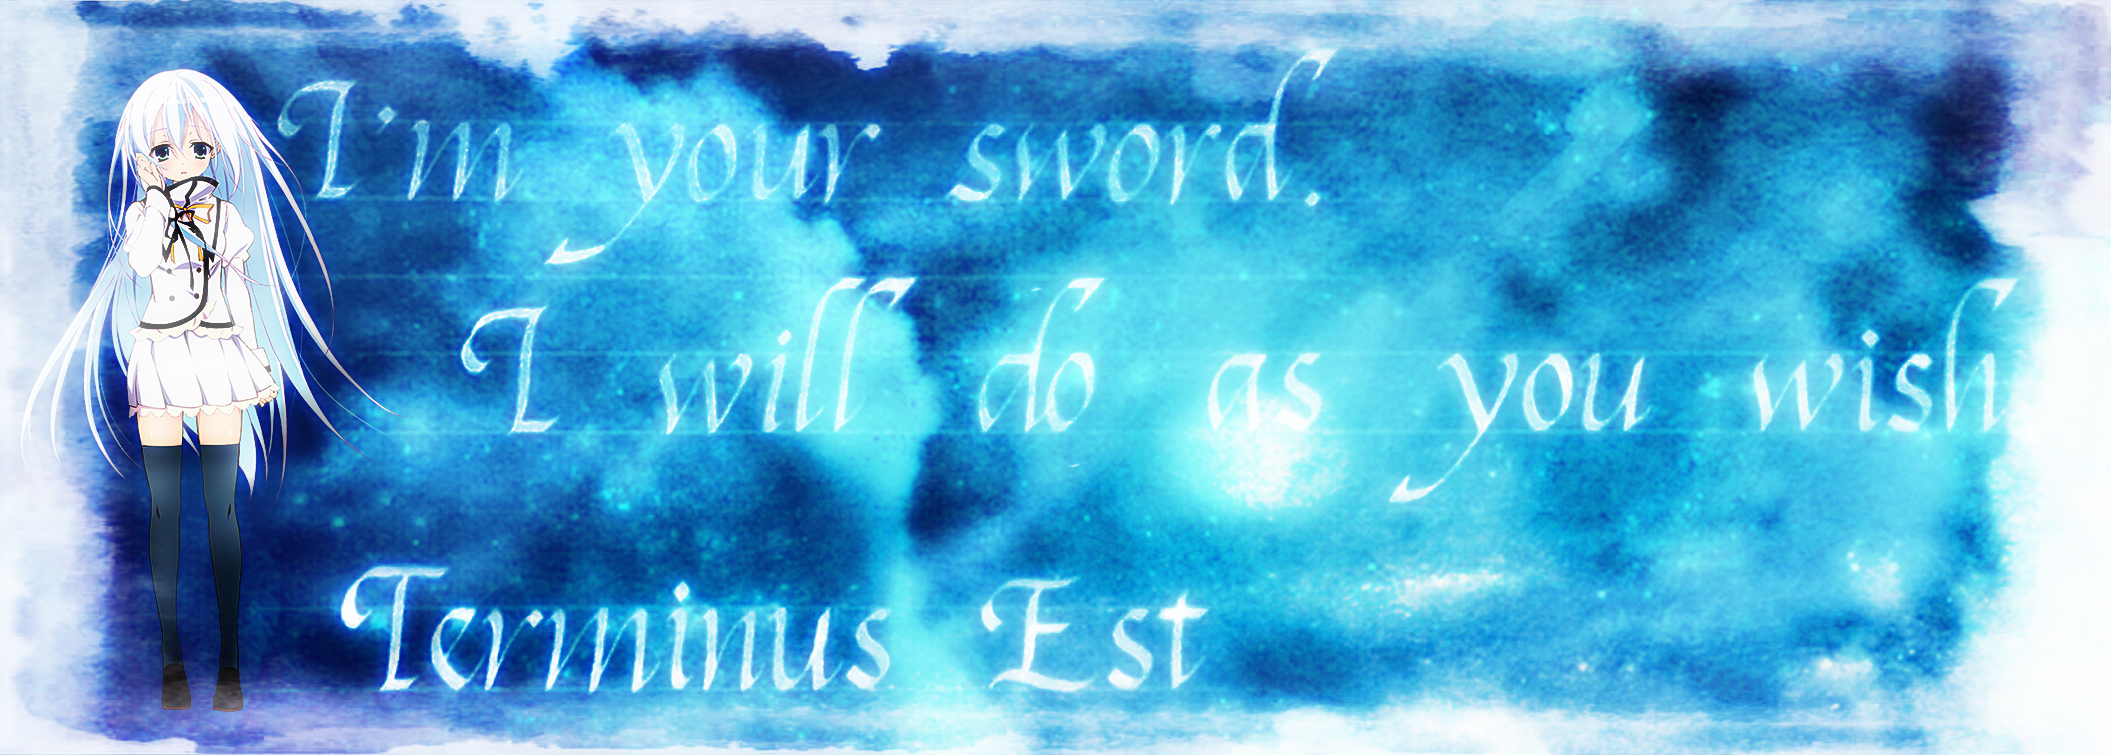 I'm your sword.I will do as you wish.